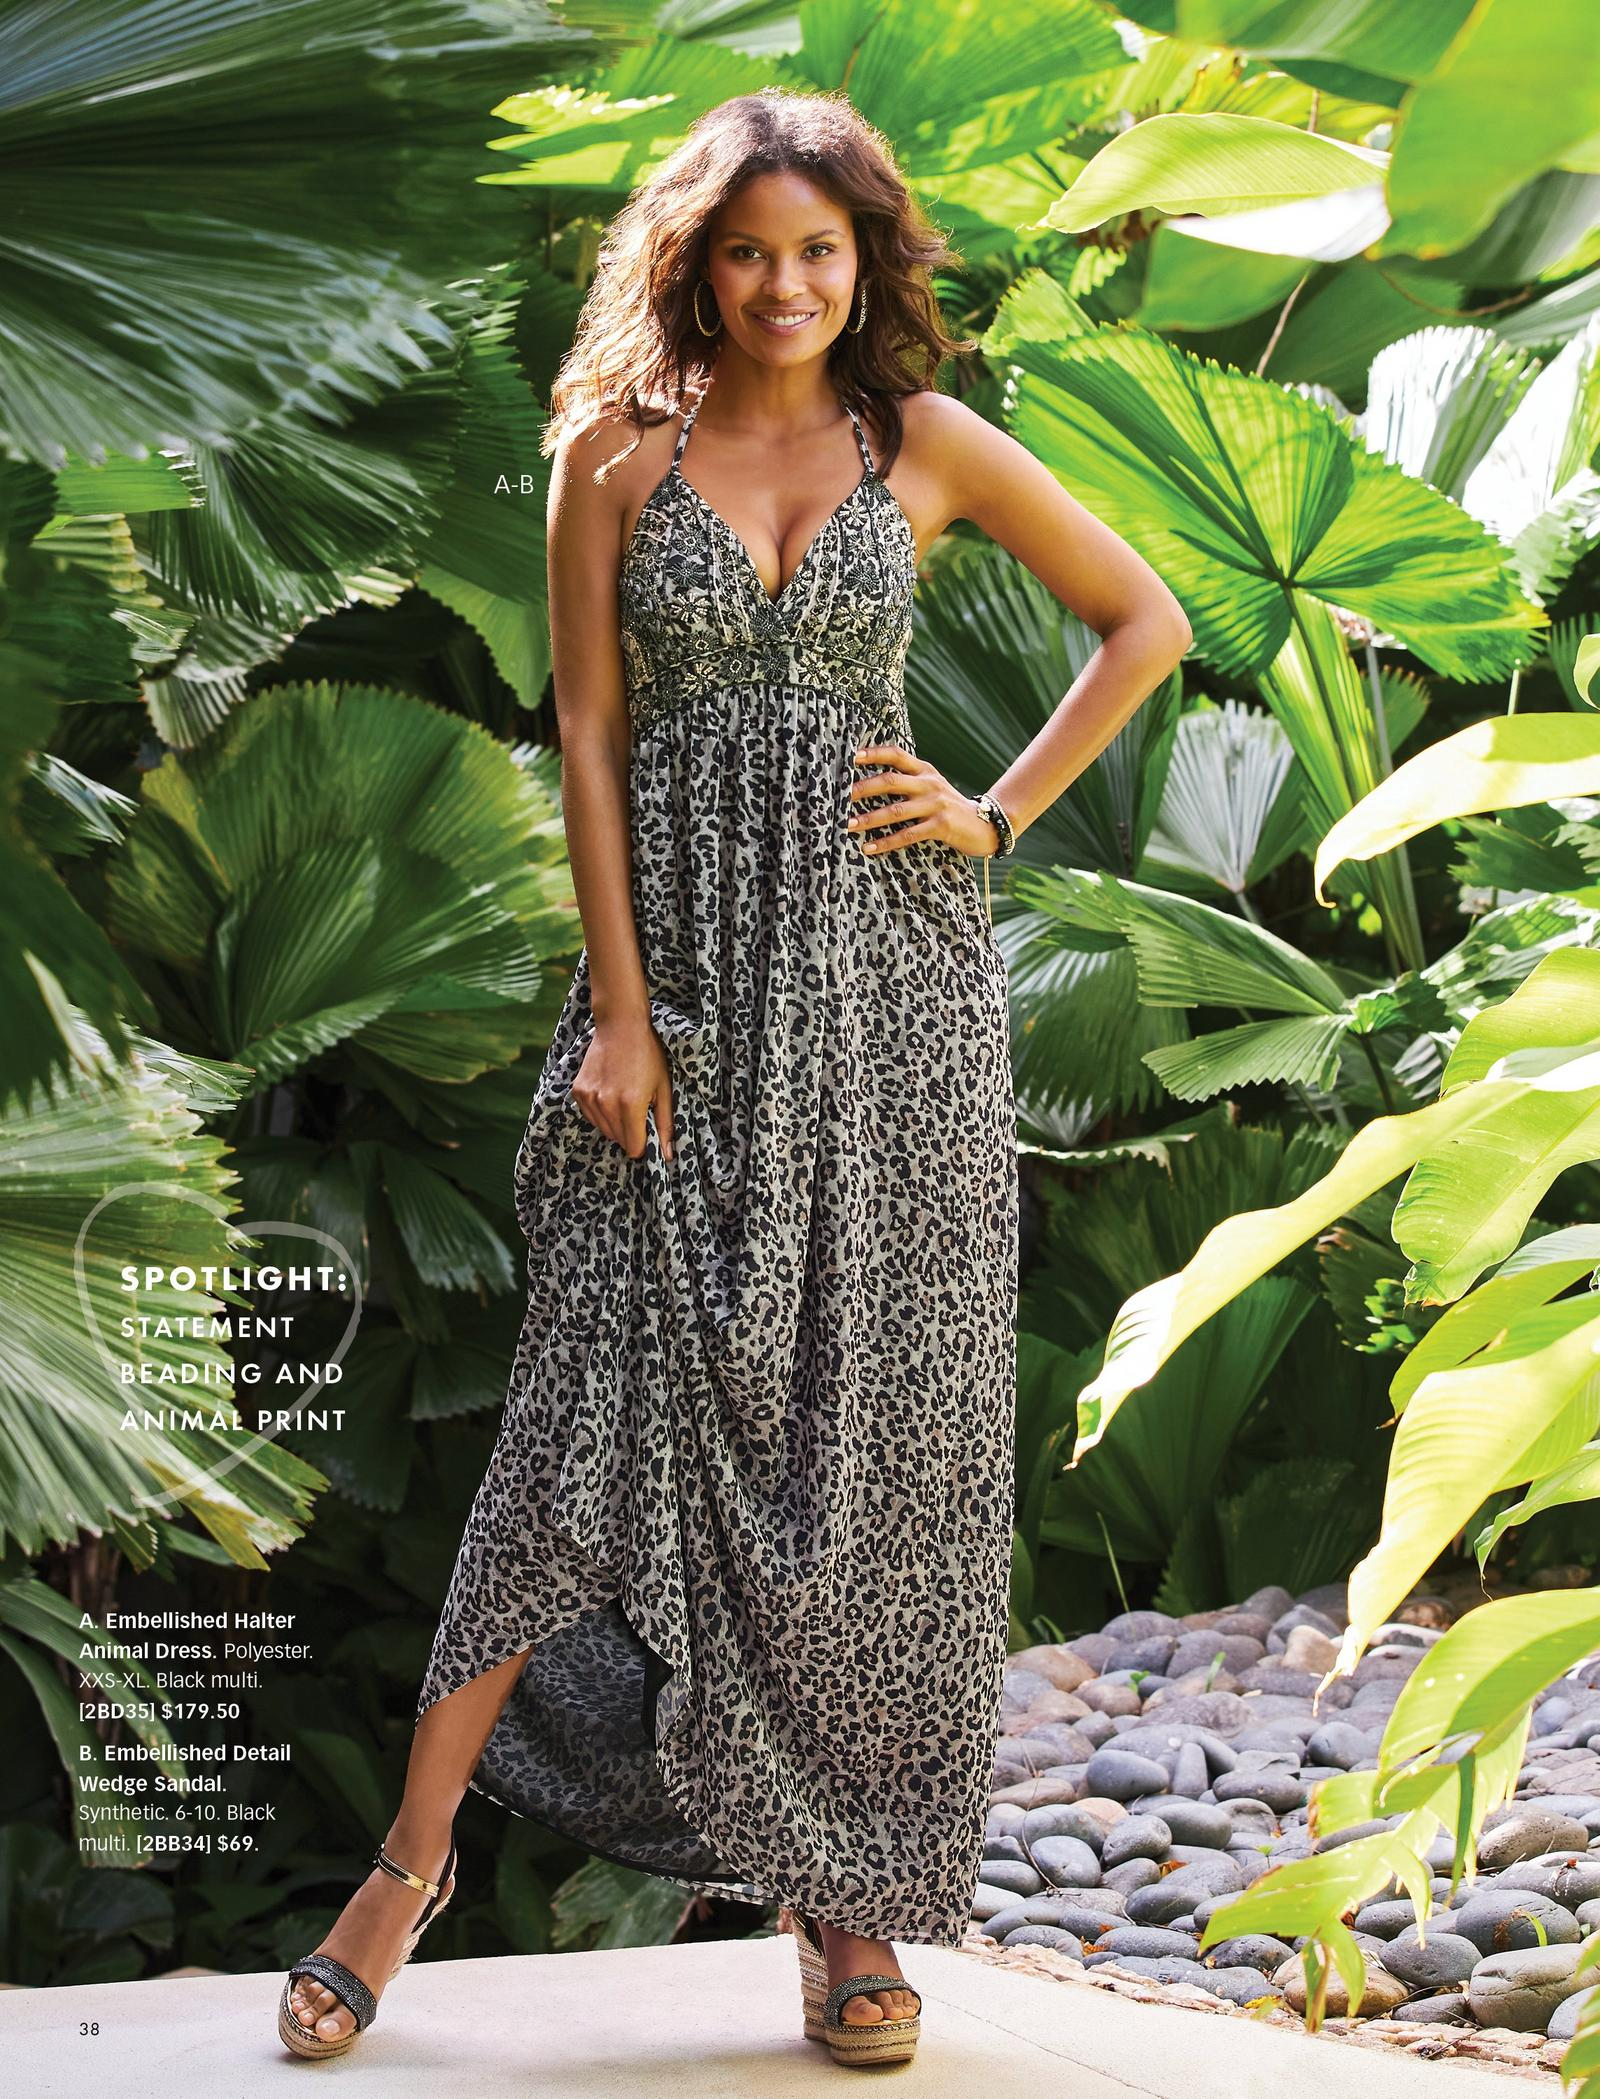 model wearing an embellished leopard print sleeveless maxi dress and black and natural embellished wedges.